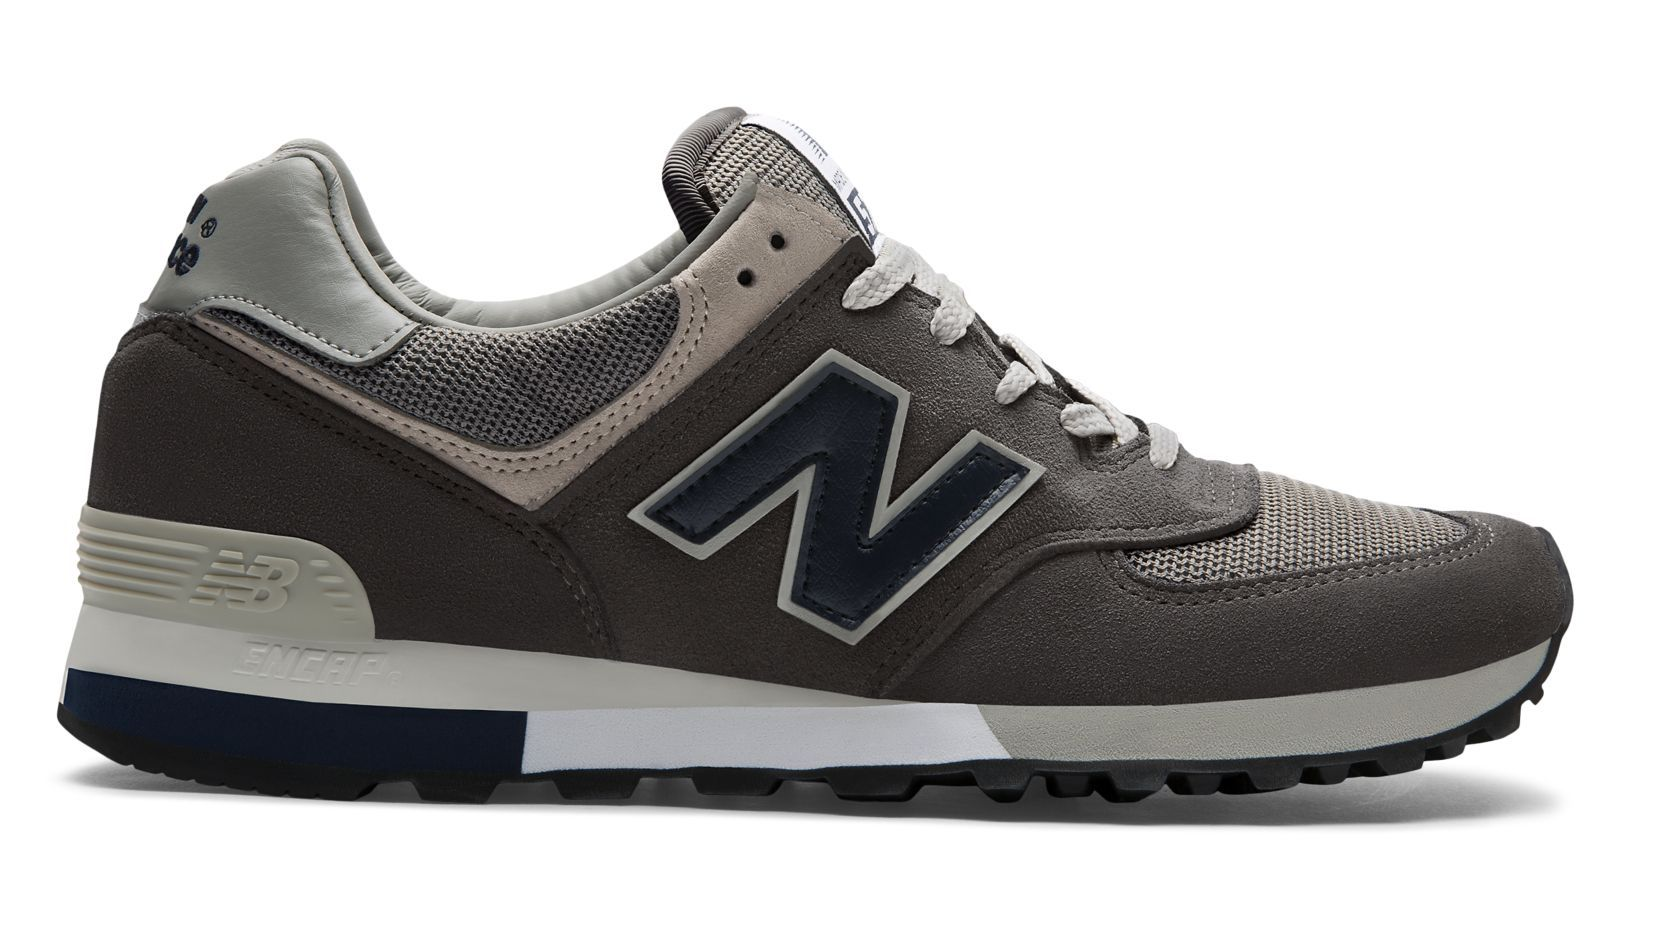 576 Made in UK new balance m1500 made in uk